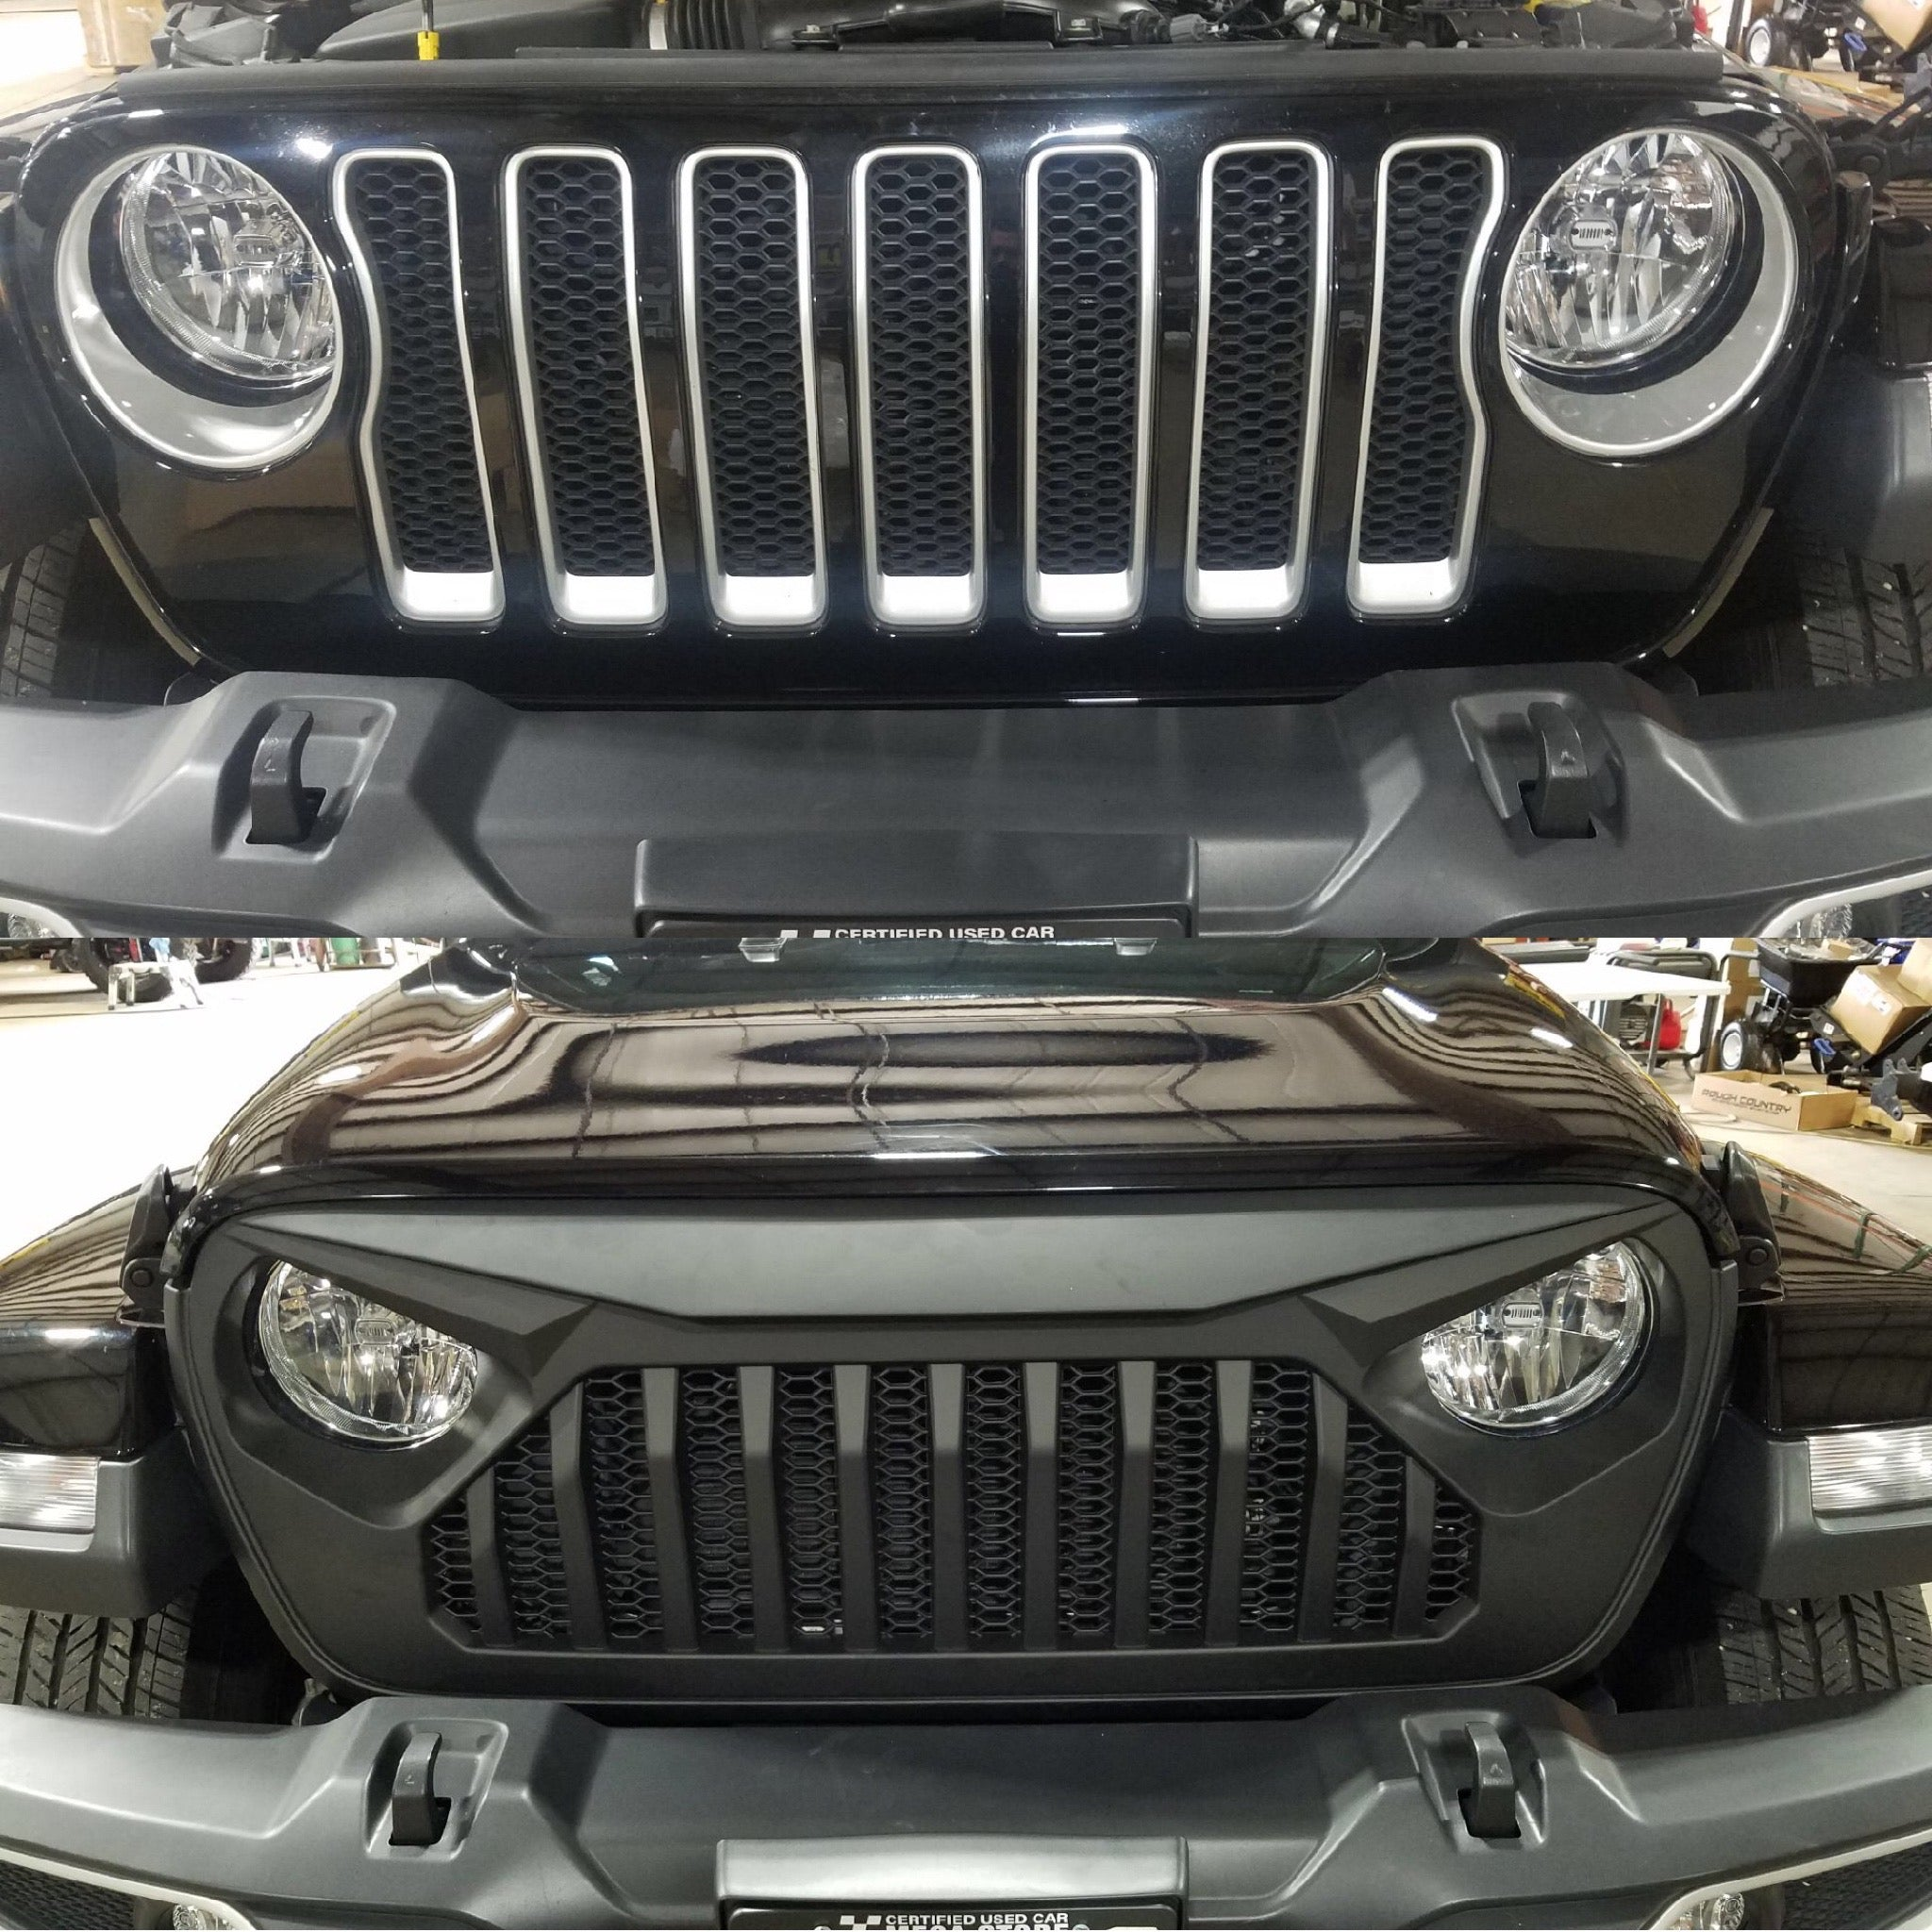 Jeep Wrangler Angry Eye Grille Install before and after